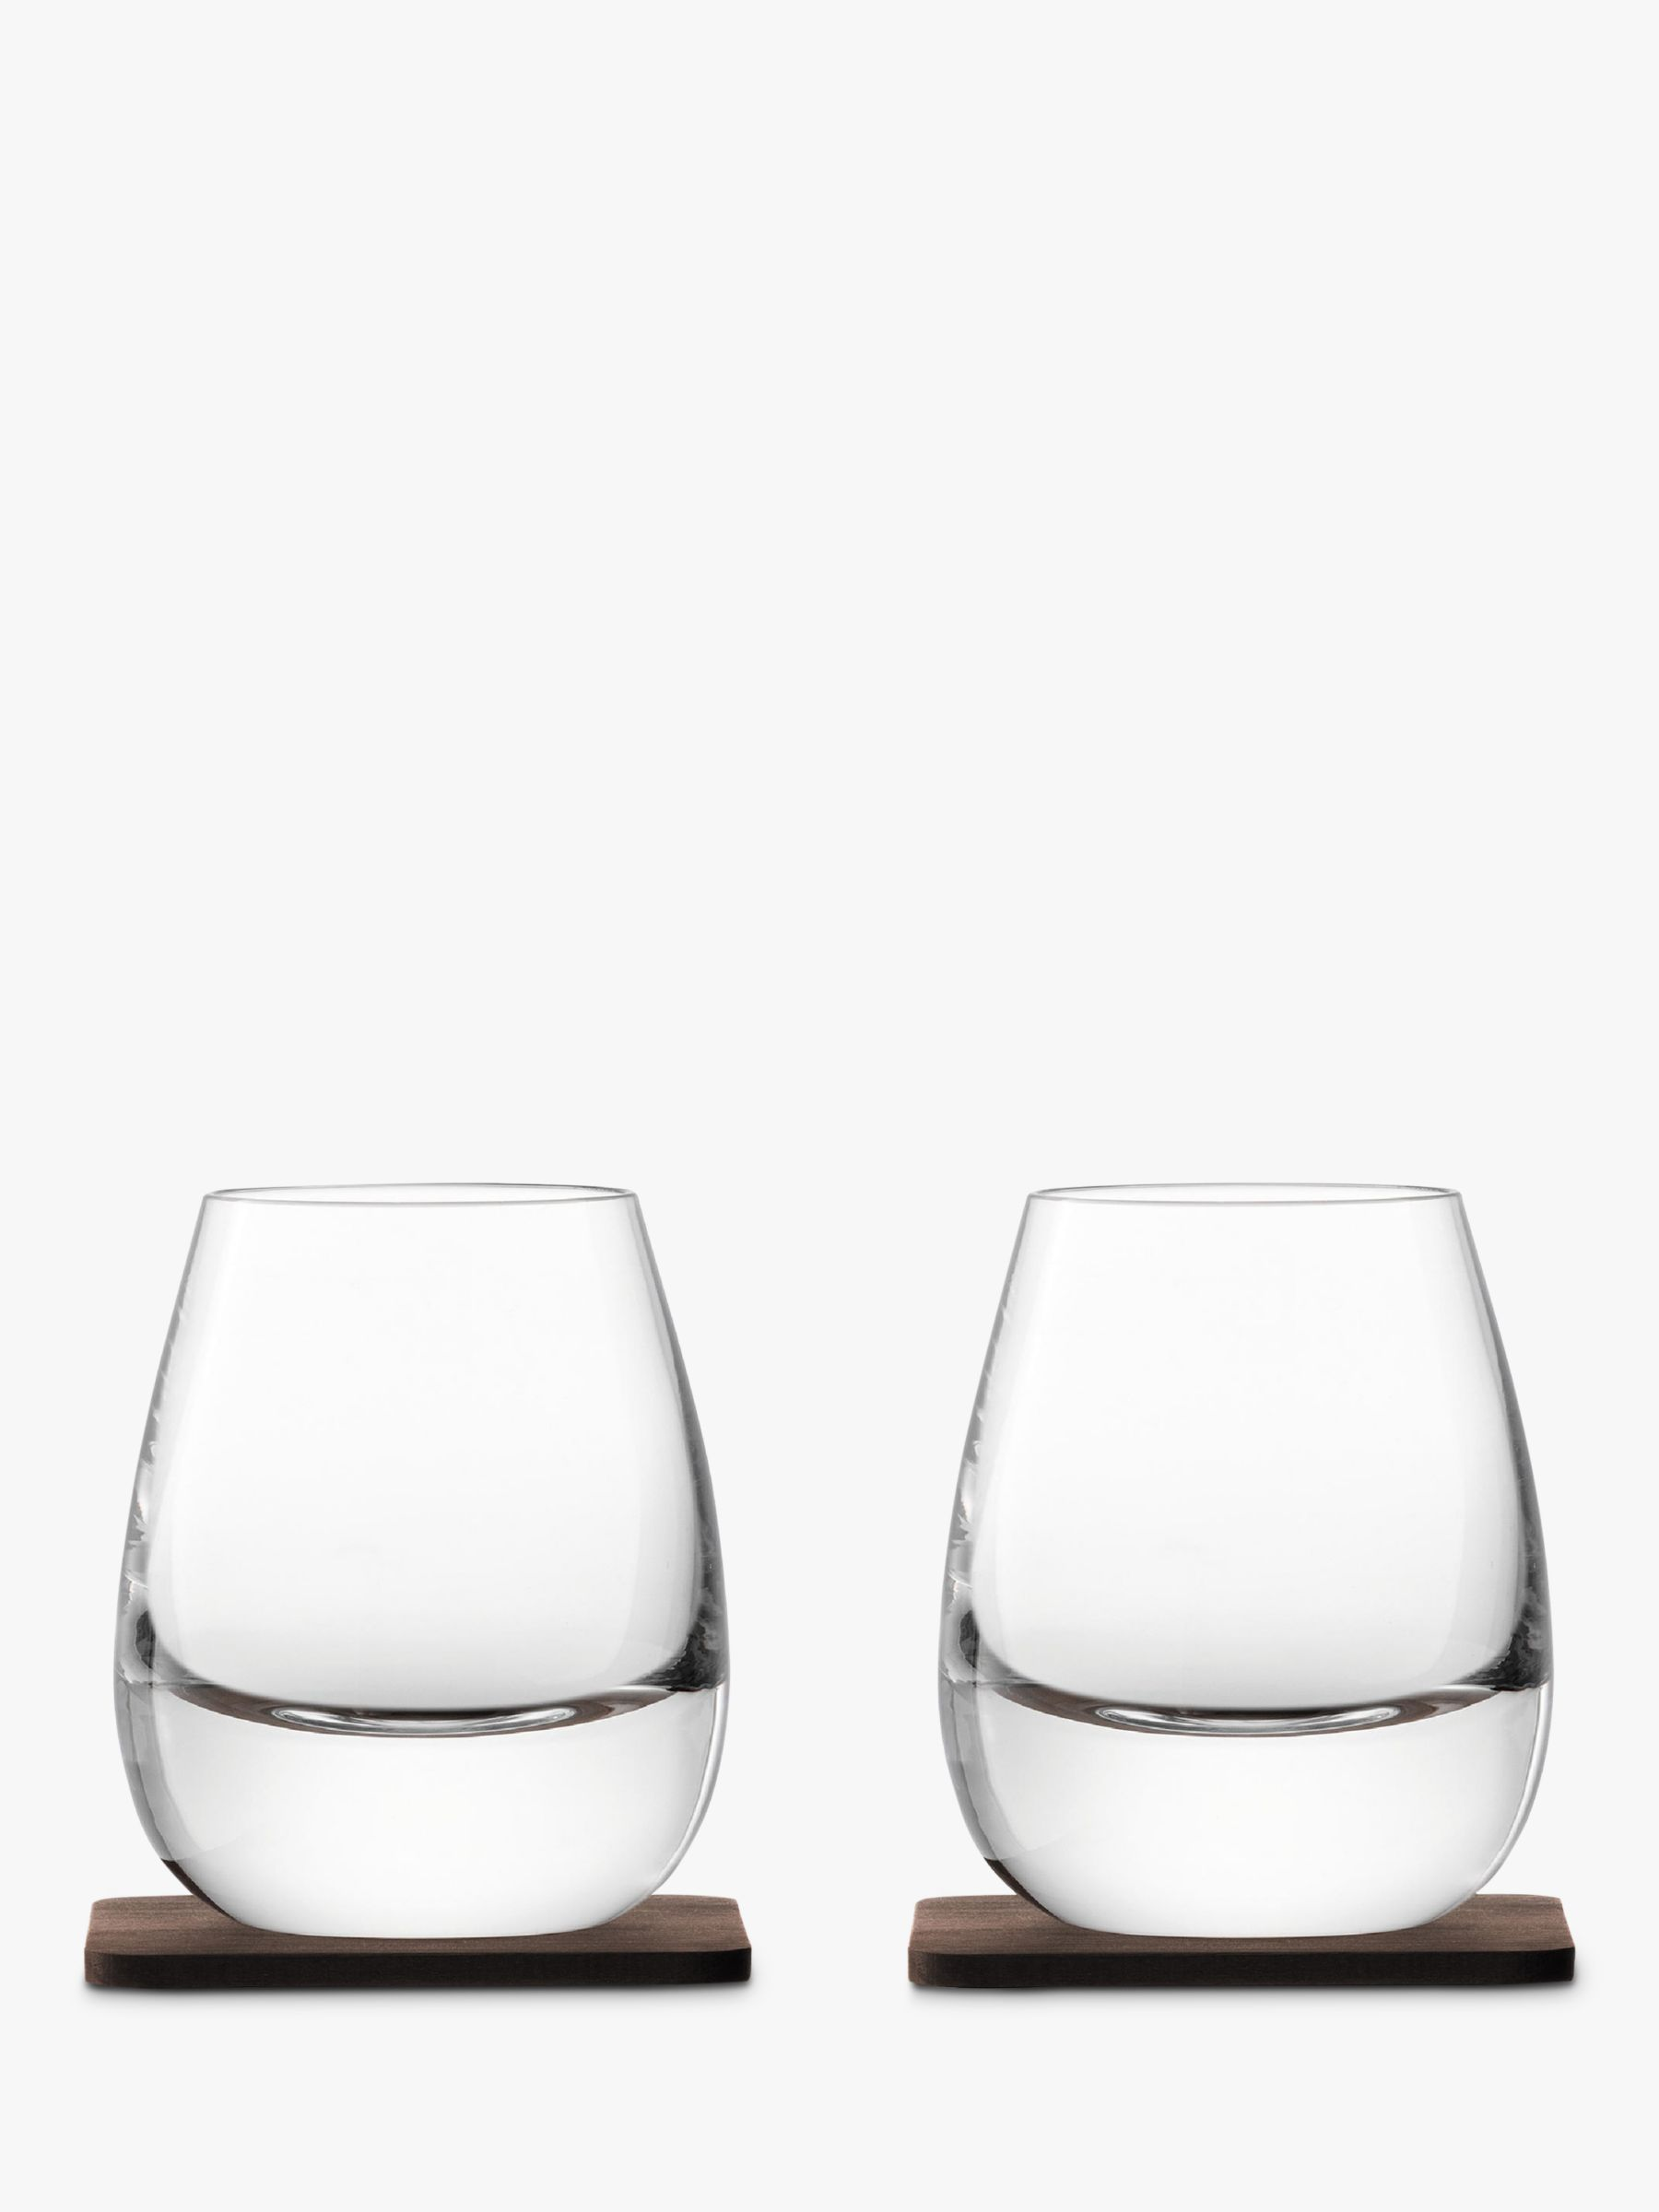 LSA International LSA International Curved Whisky Tumbler with Coaster, Set of 2, 250ml, Clear